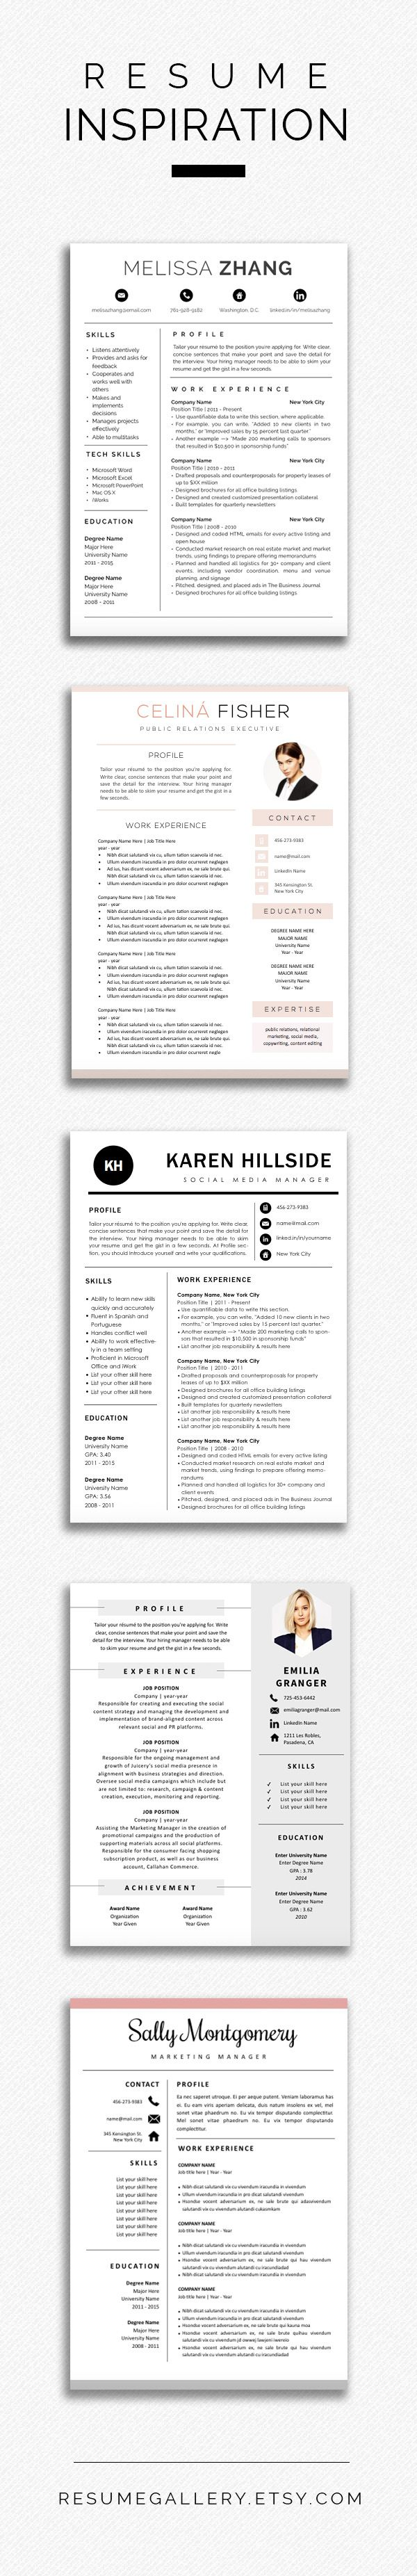 List Of Resume Skills Amusing 42 Best Resume Writing Images On Pinterest  Gym Resume And Interview